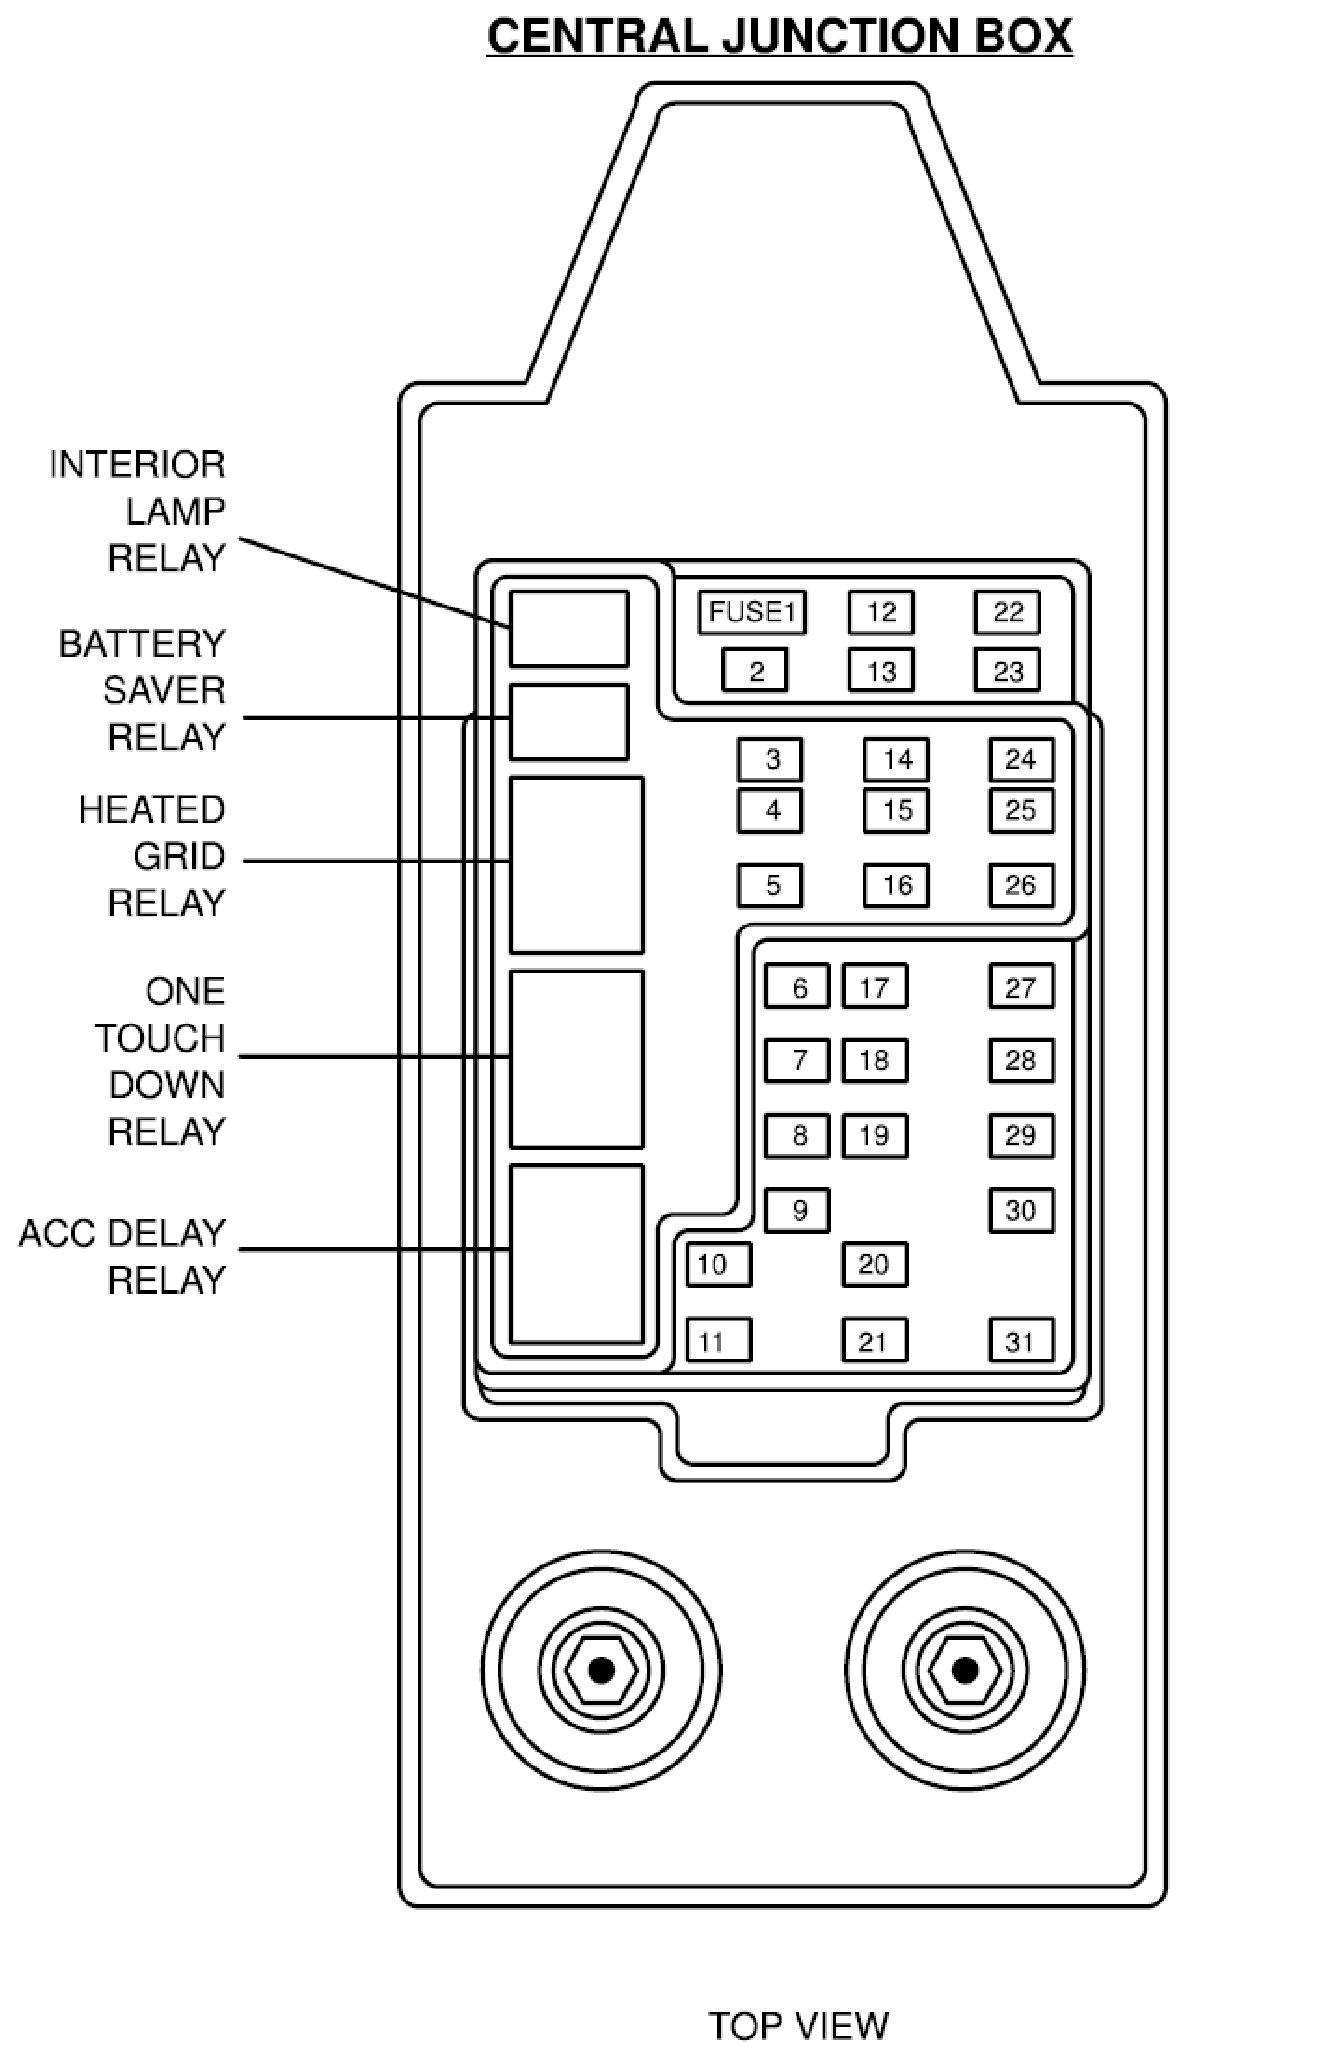 Cy 8949 Ford Expedition Fuse Box Diagram On 97 Ford F 150 Tow Wiring Diagram Wiring Diagram